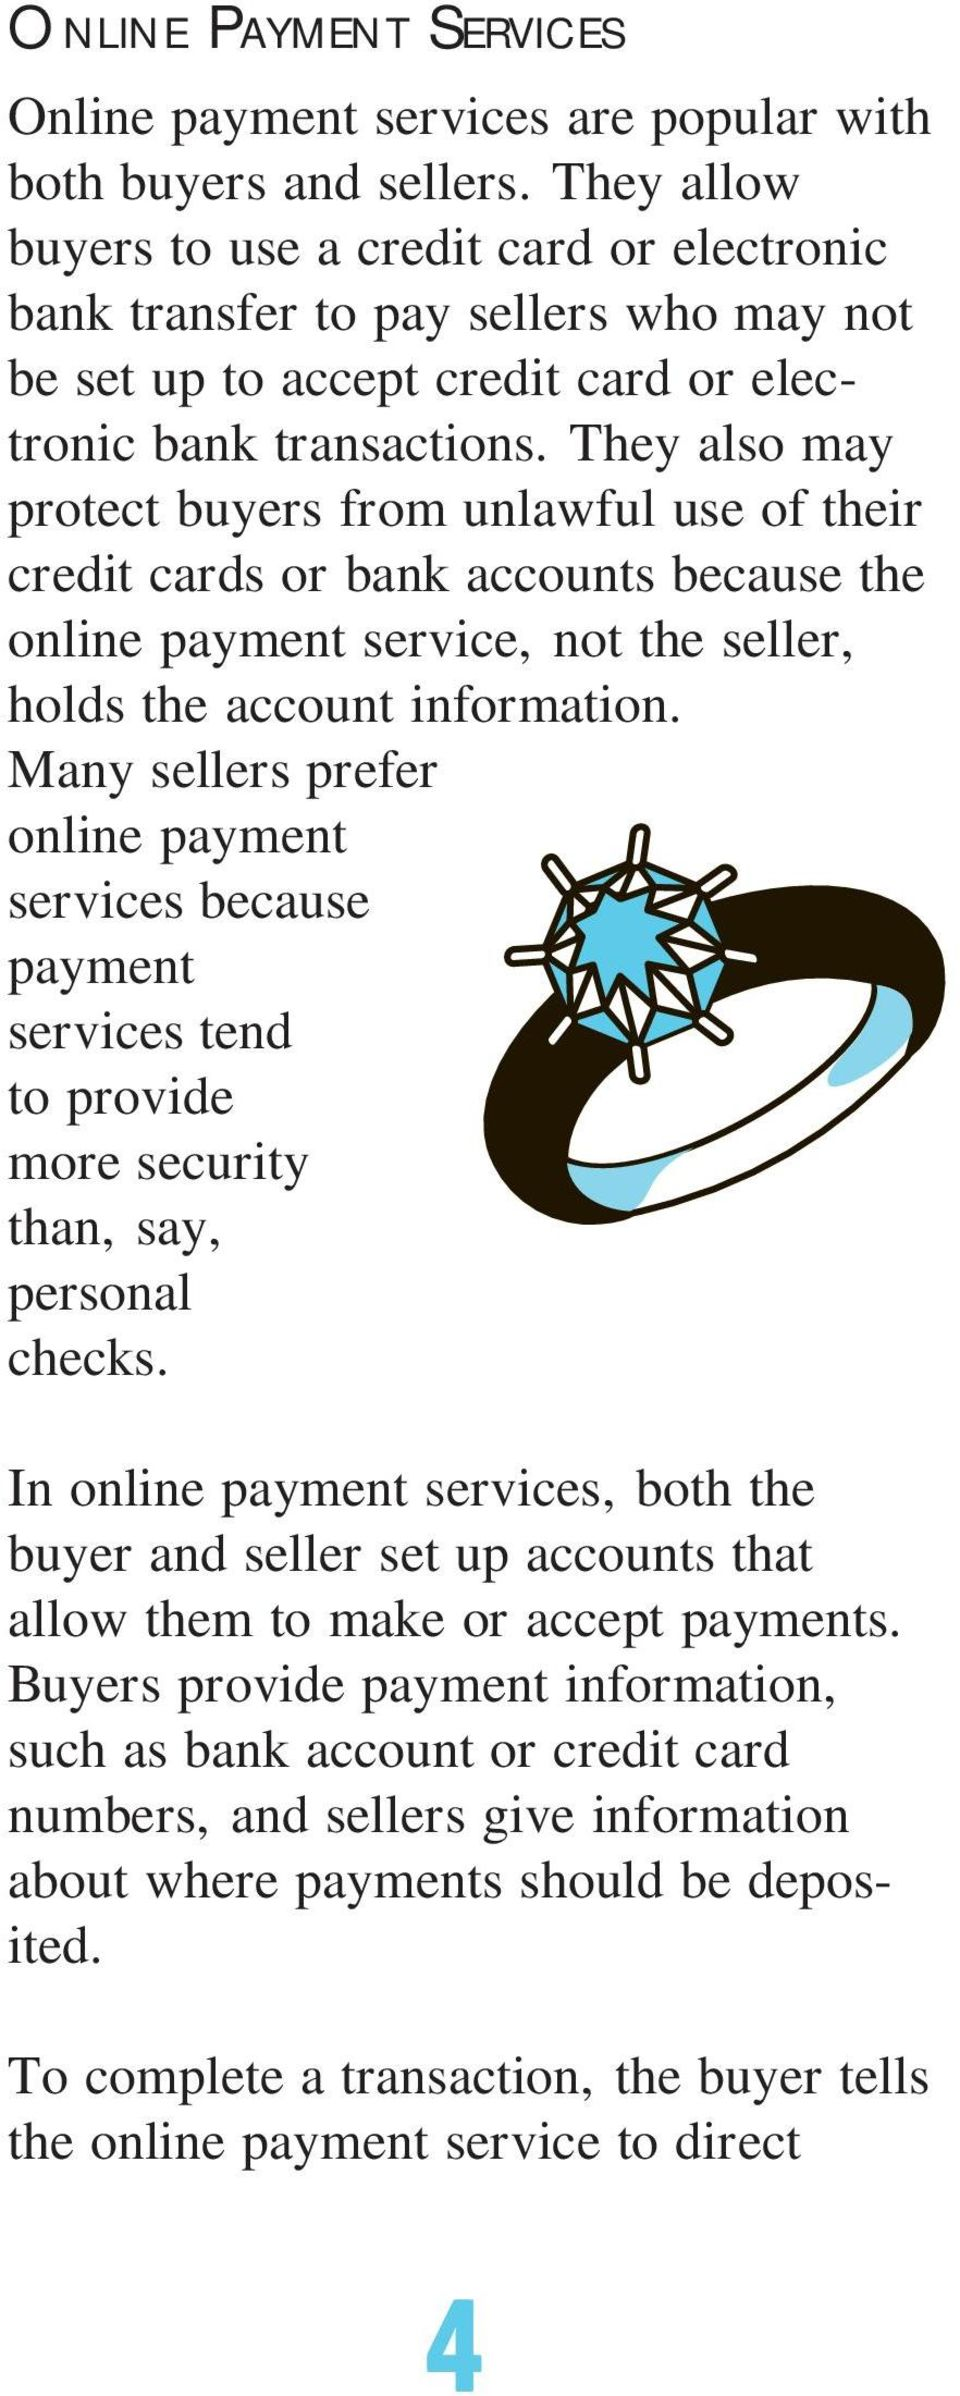 They also may protect buyers from unlawful use of their credit cards or bank accounts because the online payment service, not the seller, holds the account information.